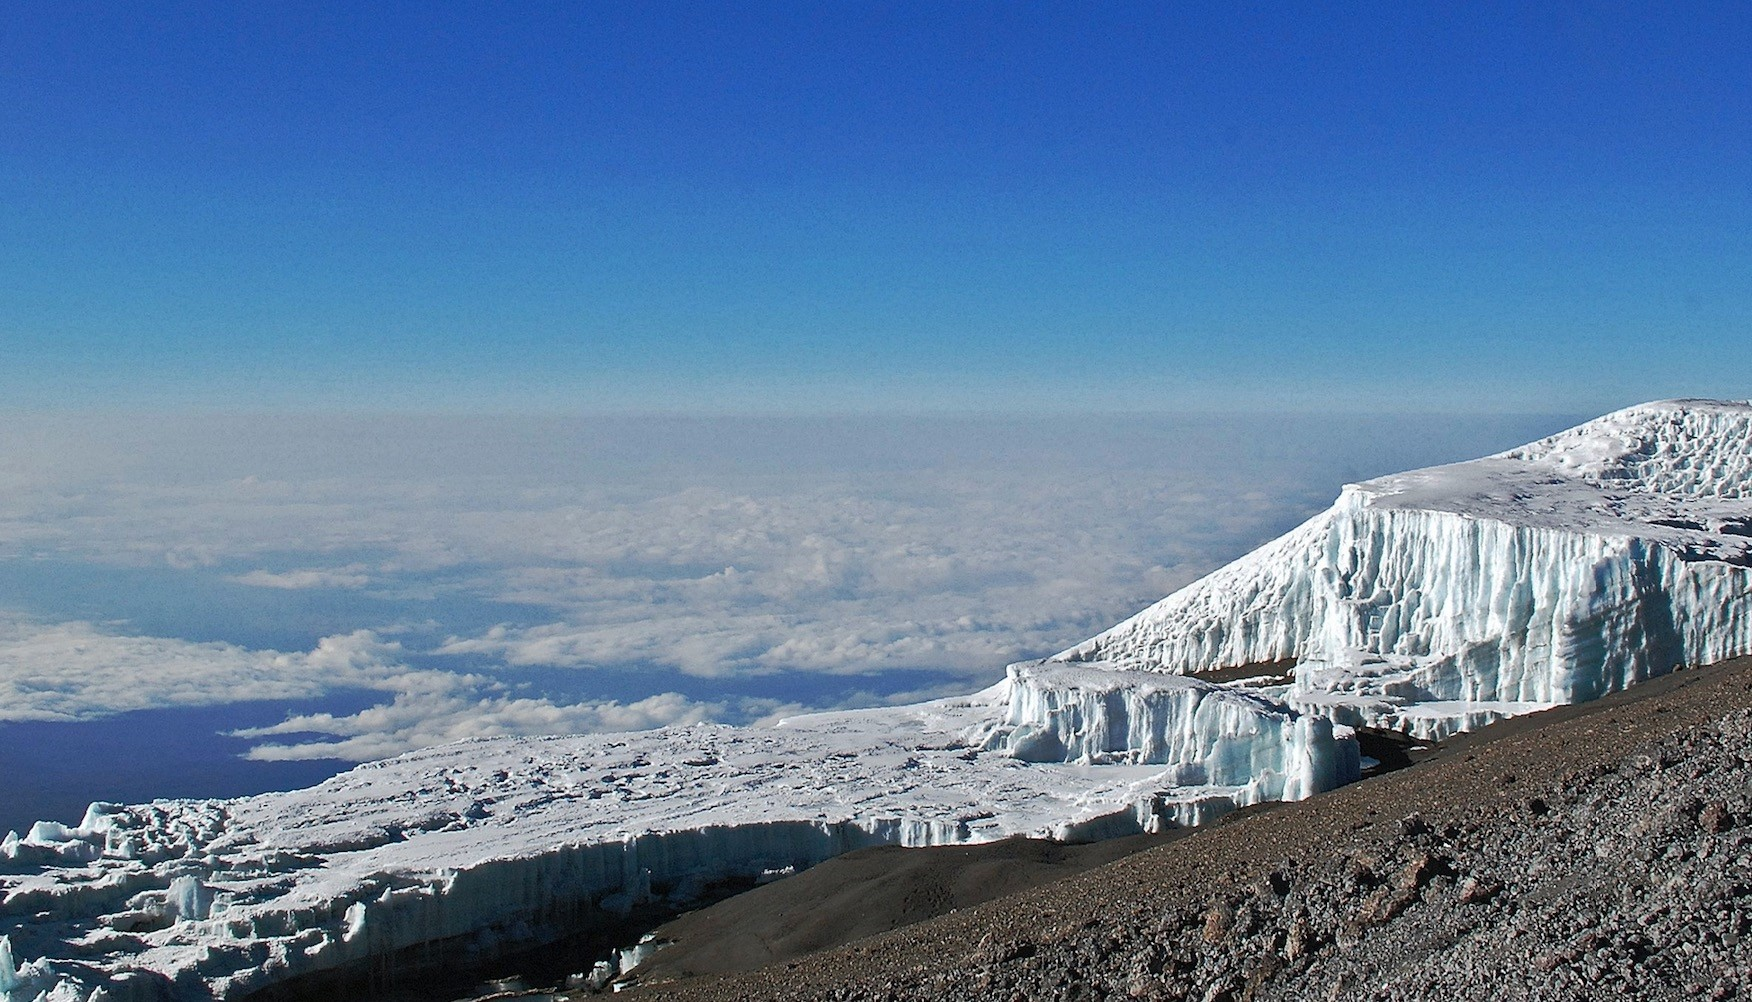 Kilimanjaro Natural Park in Tanzania is one of the many sites threatened by climate change.